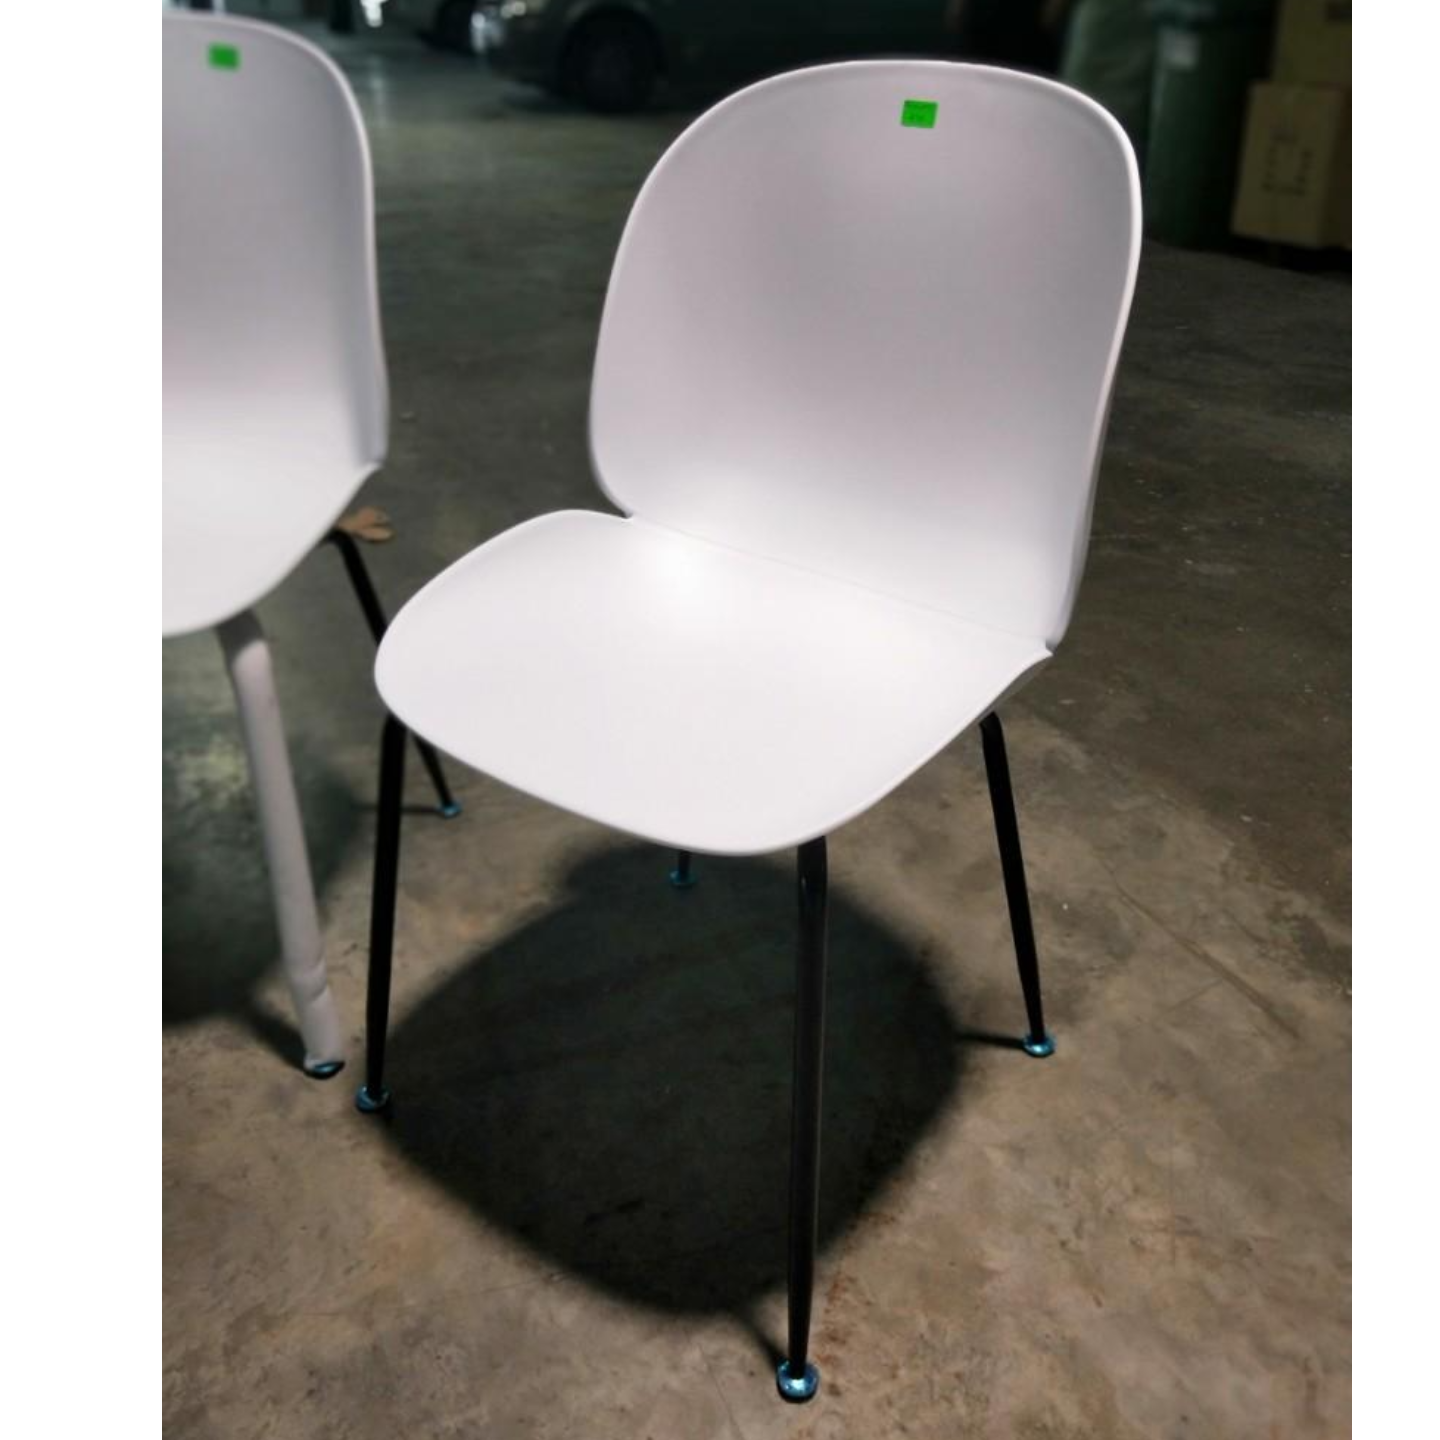 IZZY Designer Replica Chairs in WHITE